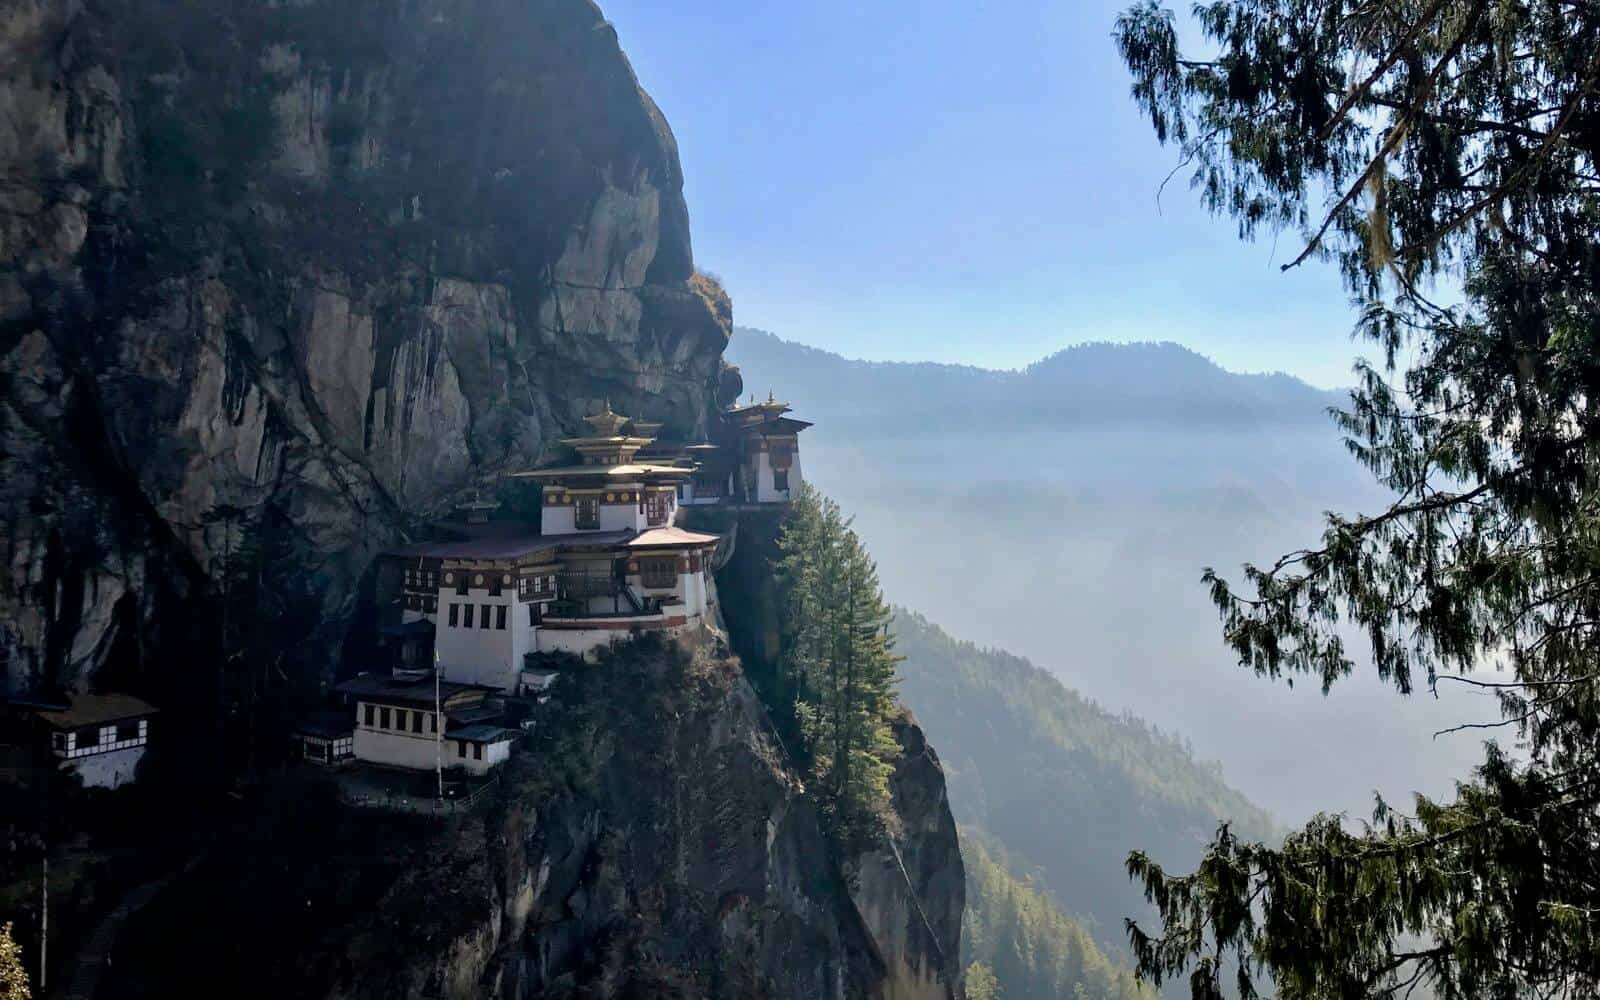 Paro Bhutan betternotstop bucket list mountain monastery